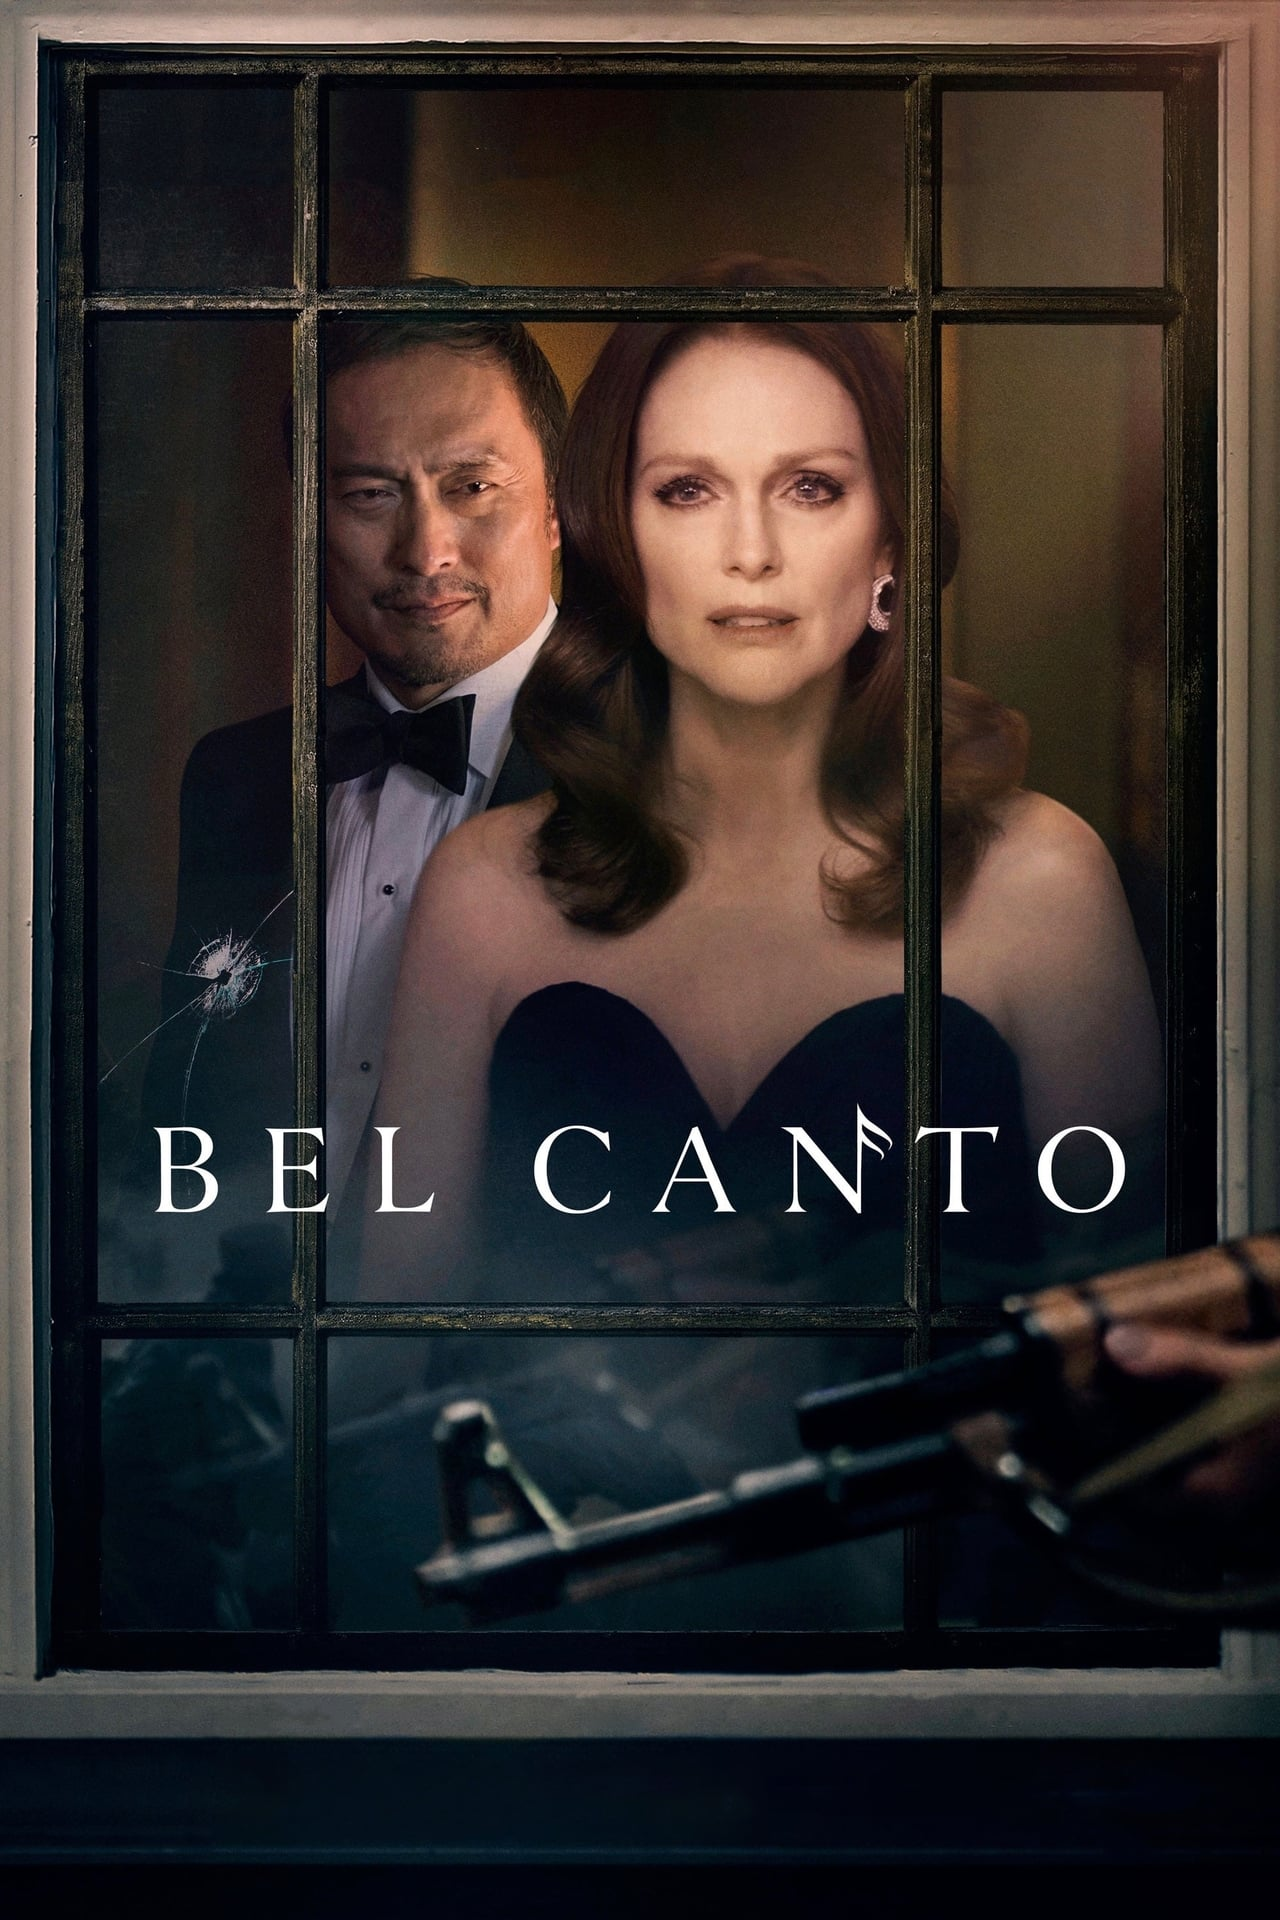 Bel Canto (2018) putlockers cafe